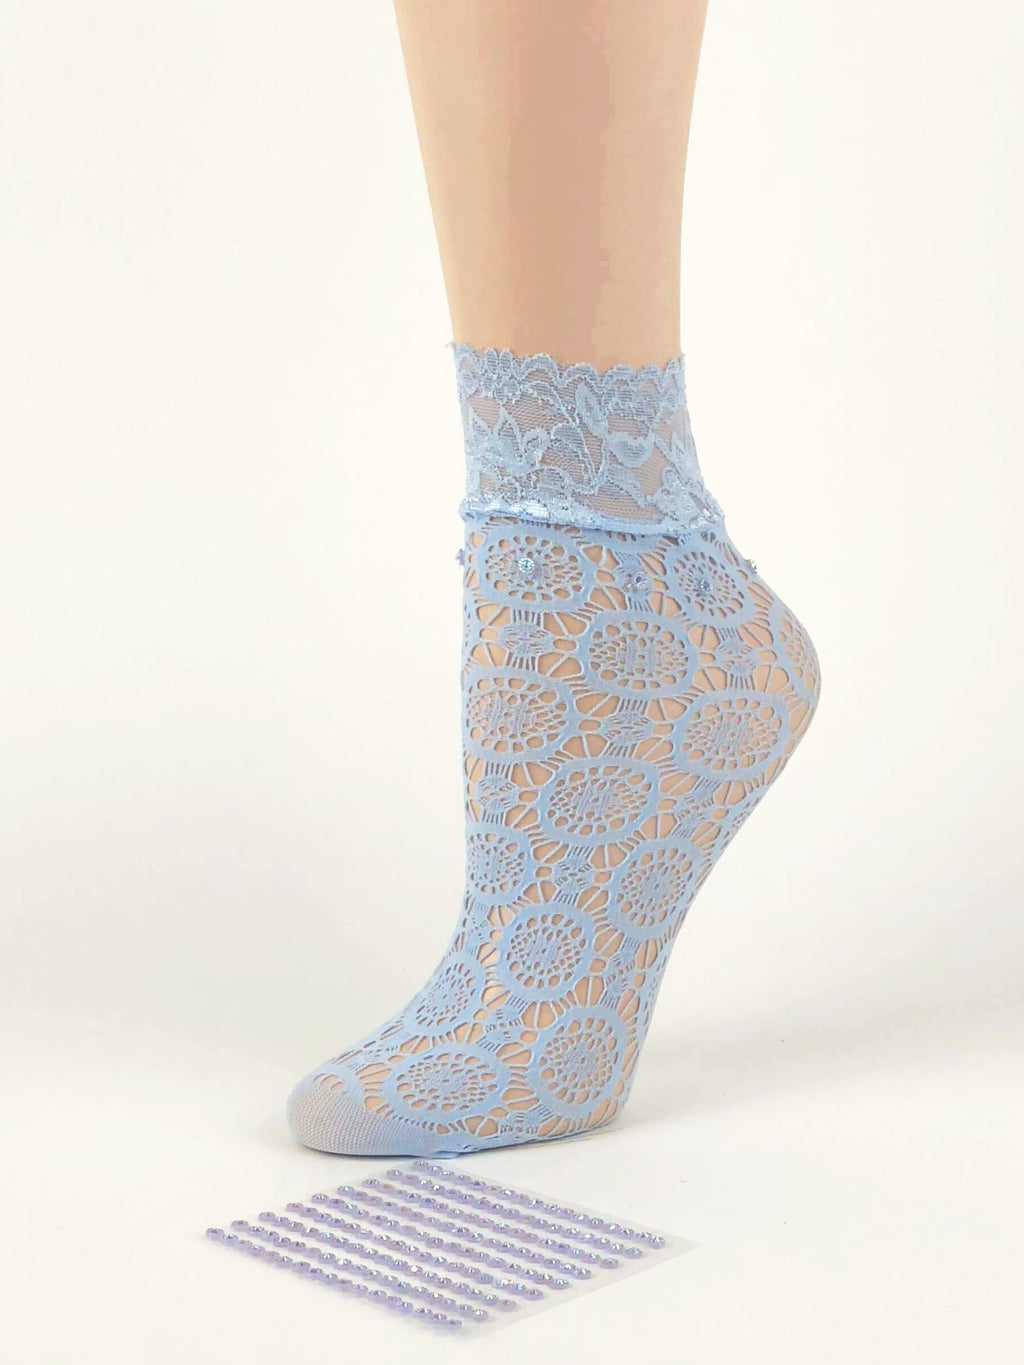 Geogrous Sky Blue Circle Patterned Sheer Socks - Global Trendz Fashion®